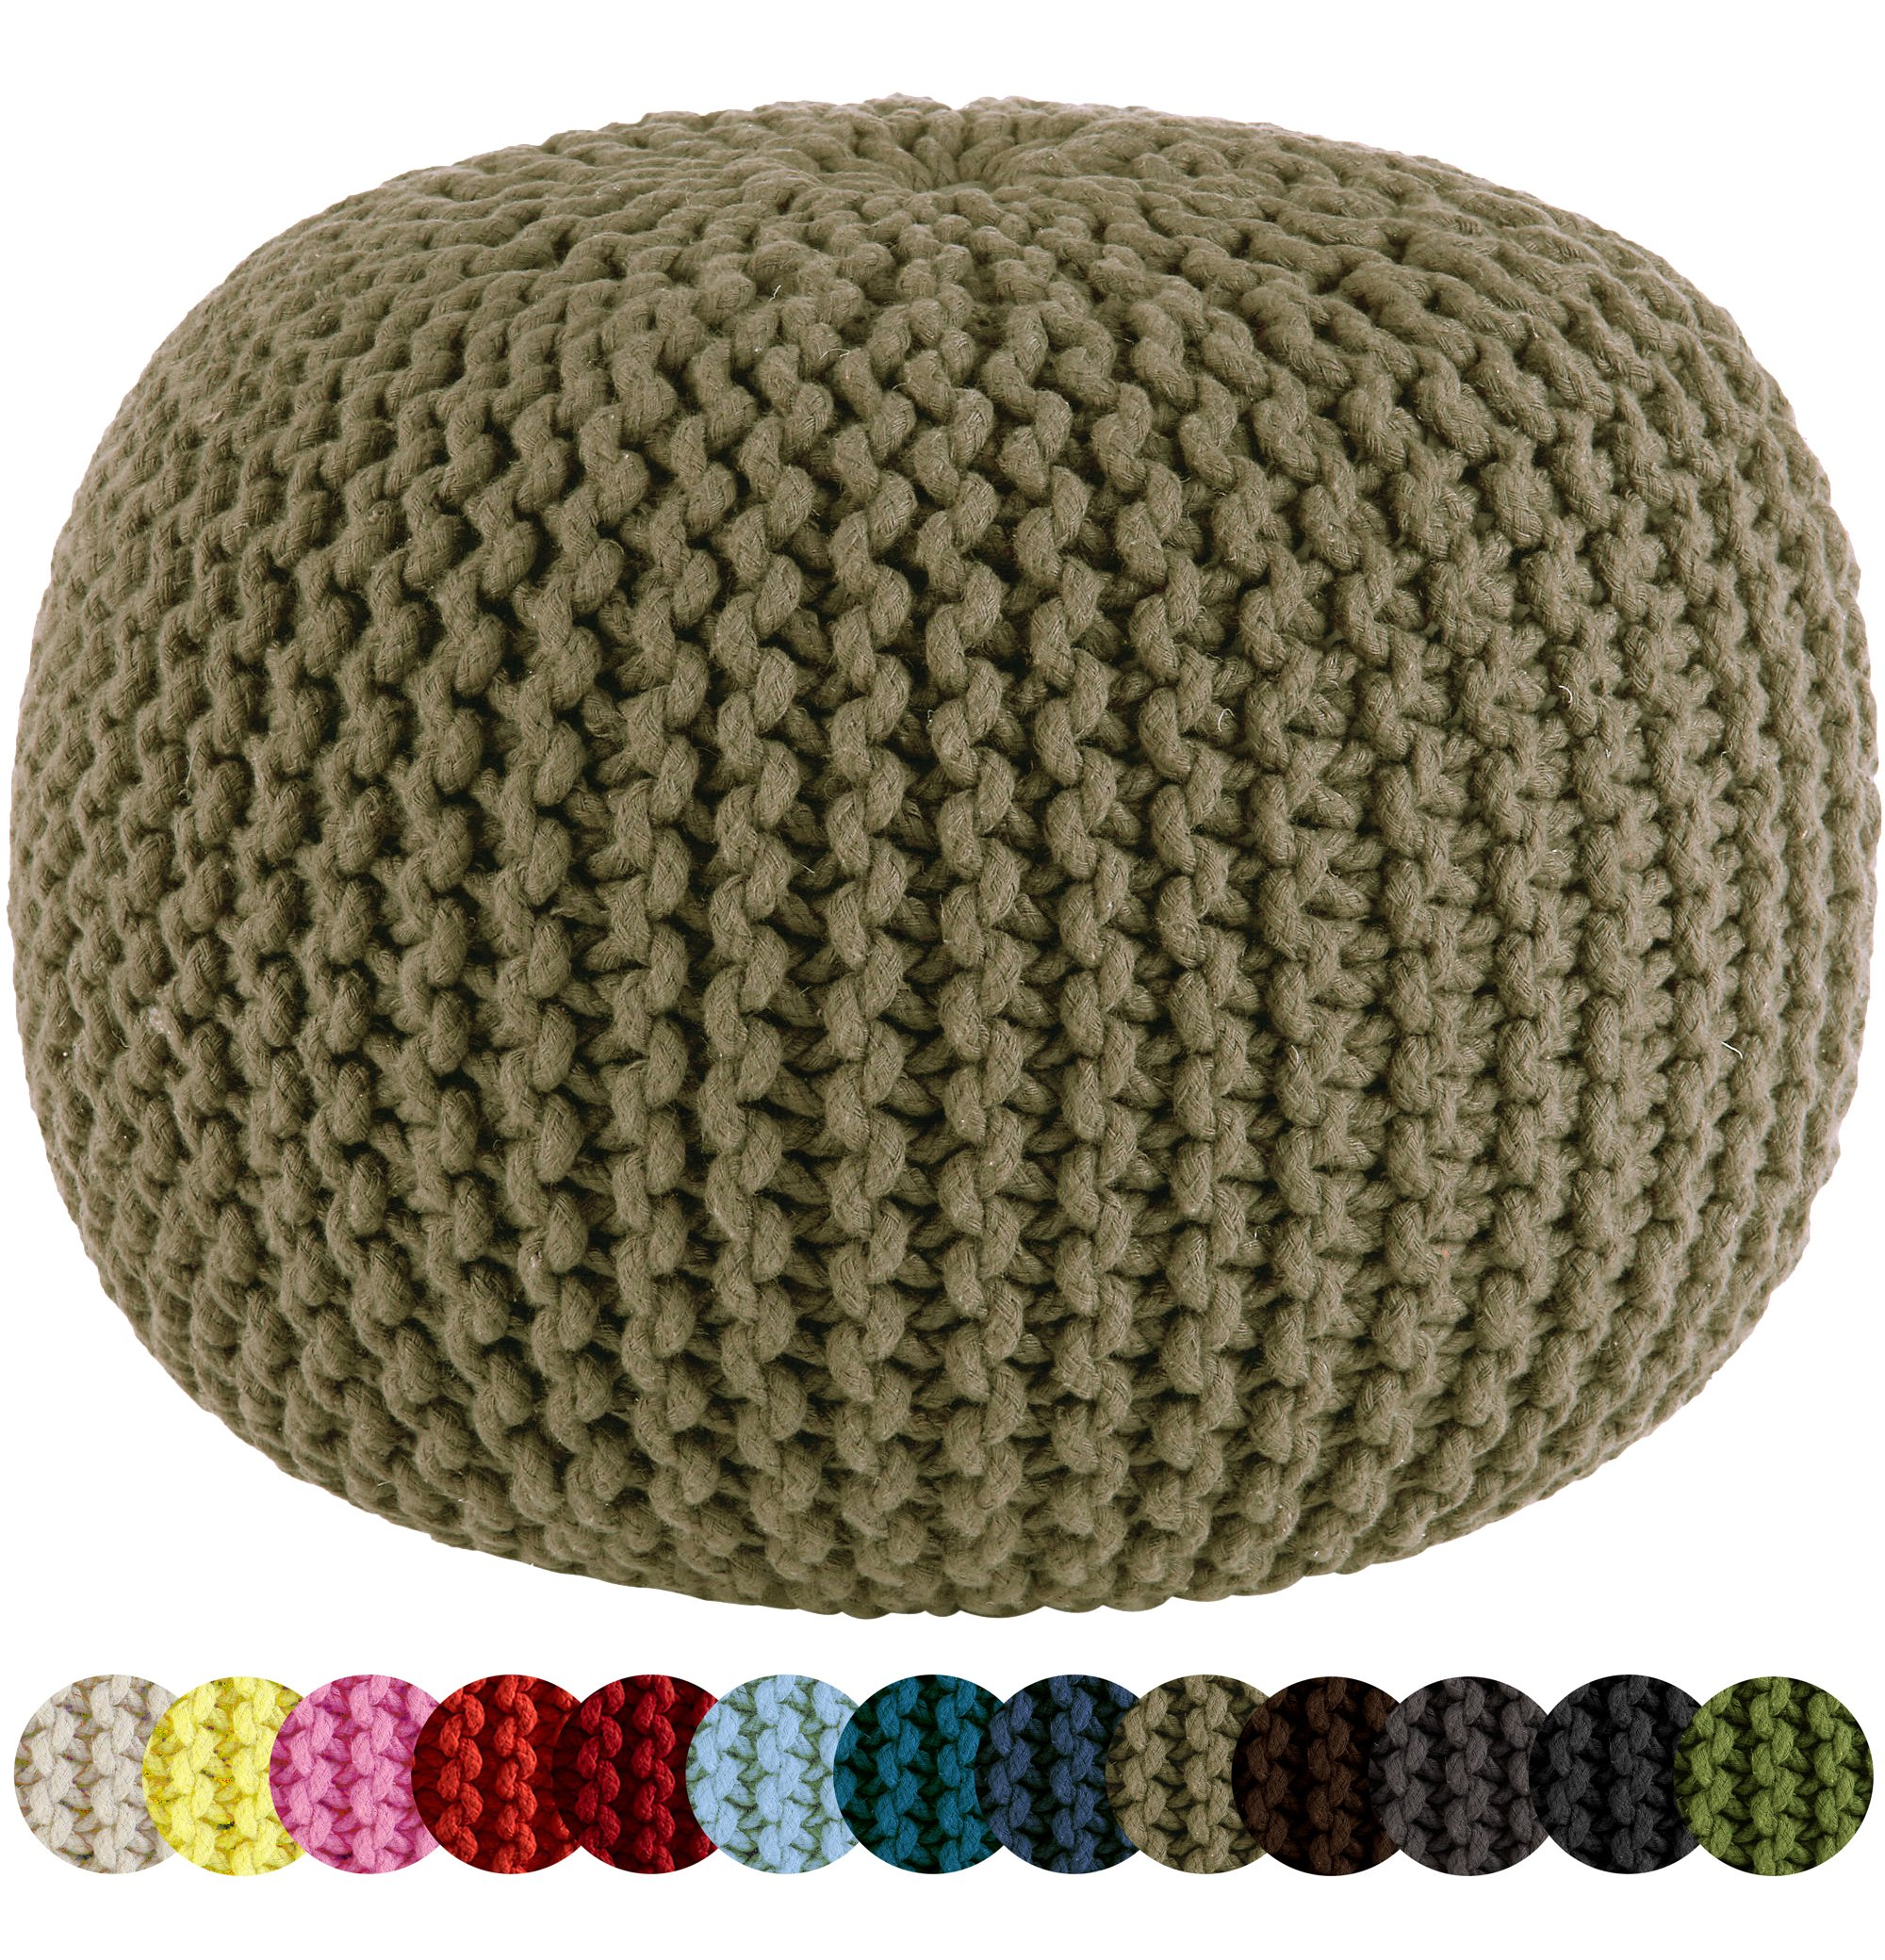 Cotton Craft - Hand Knitted Cable Style Dori Pouf - Beige - Floor Ottoman - 100% Cotton Braid Cord - Handmade & Hand stitched - Truly one of a kind seating - 20 Dia x 14 High